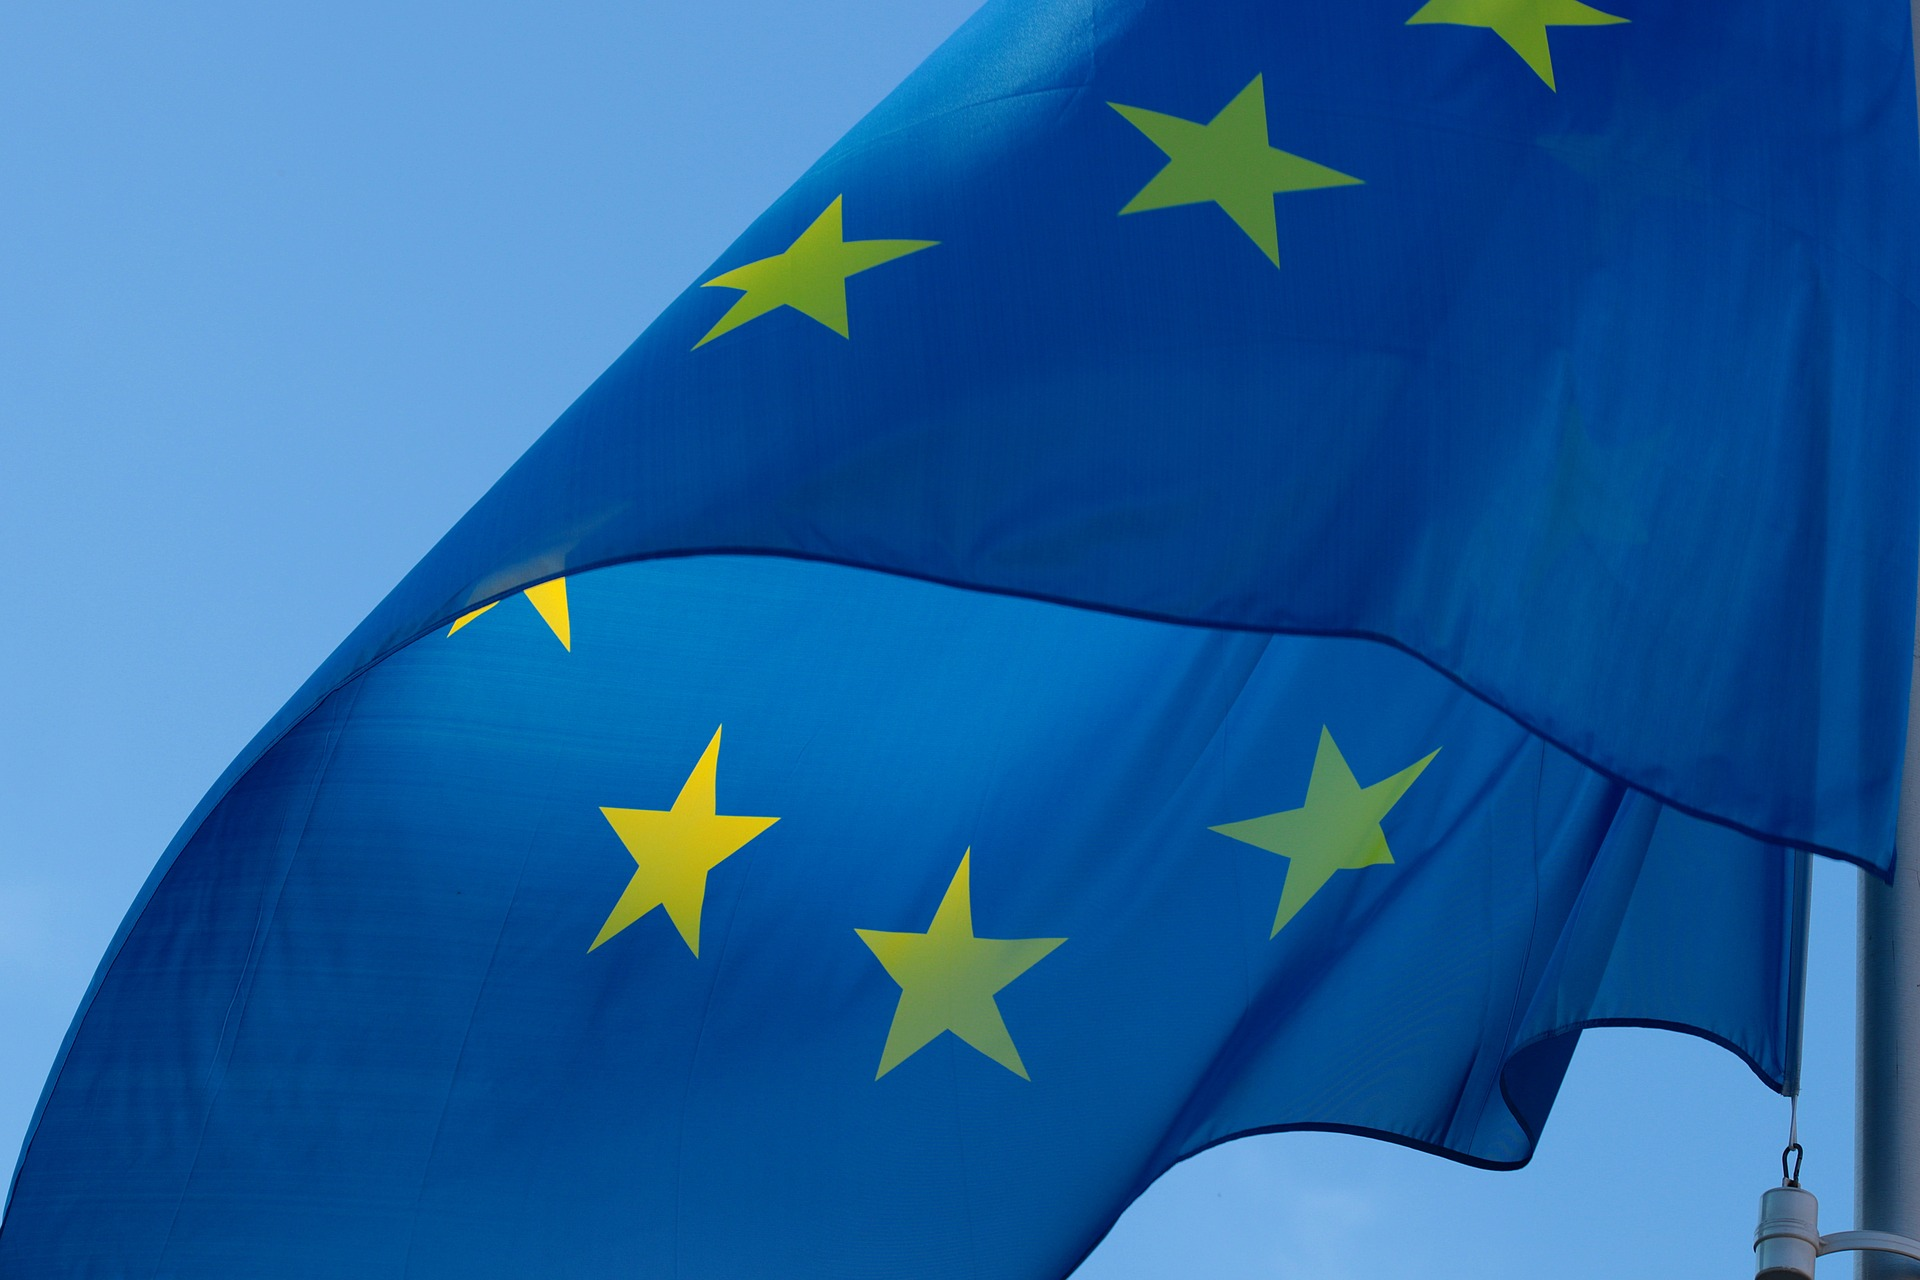 Do CE/SEE countries (still) trust the EU?